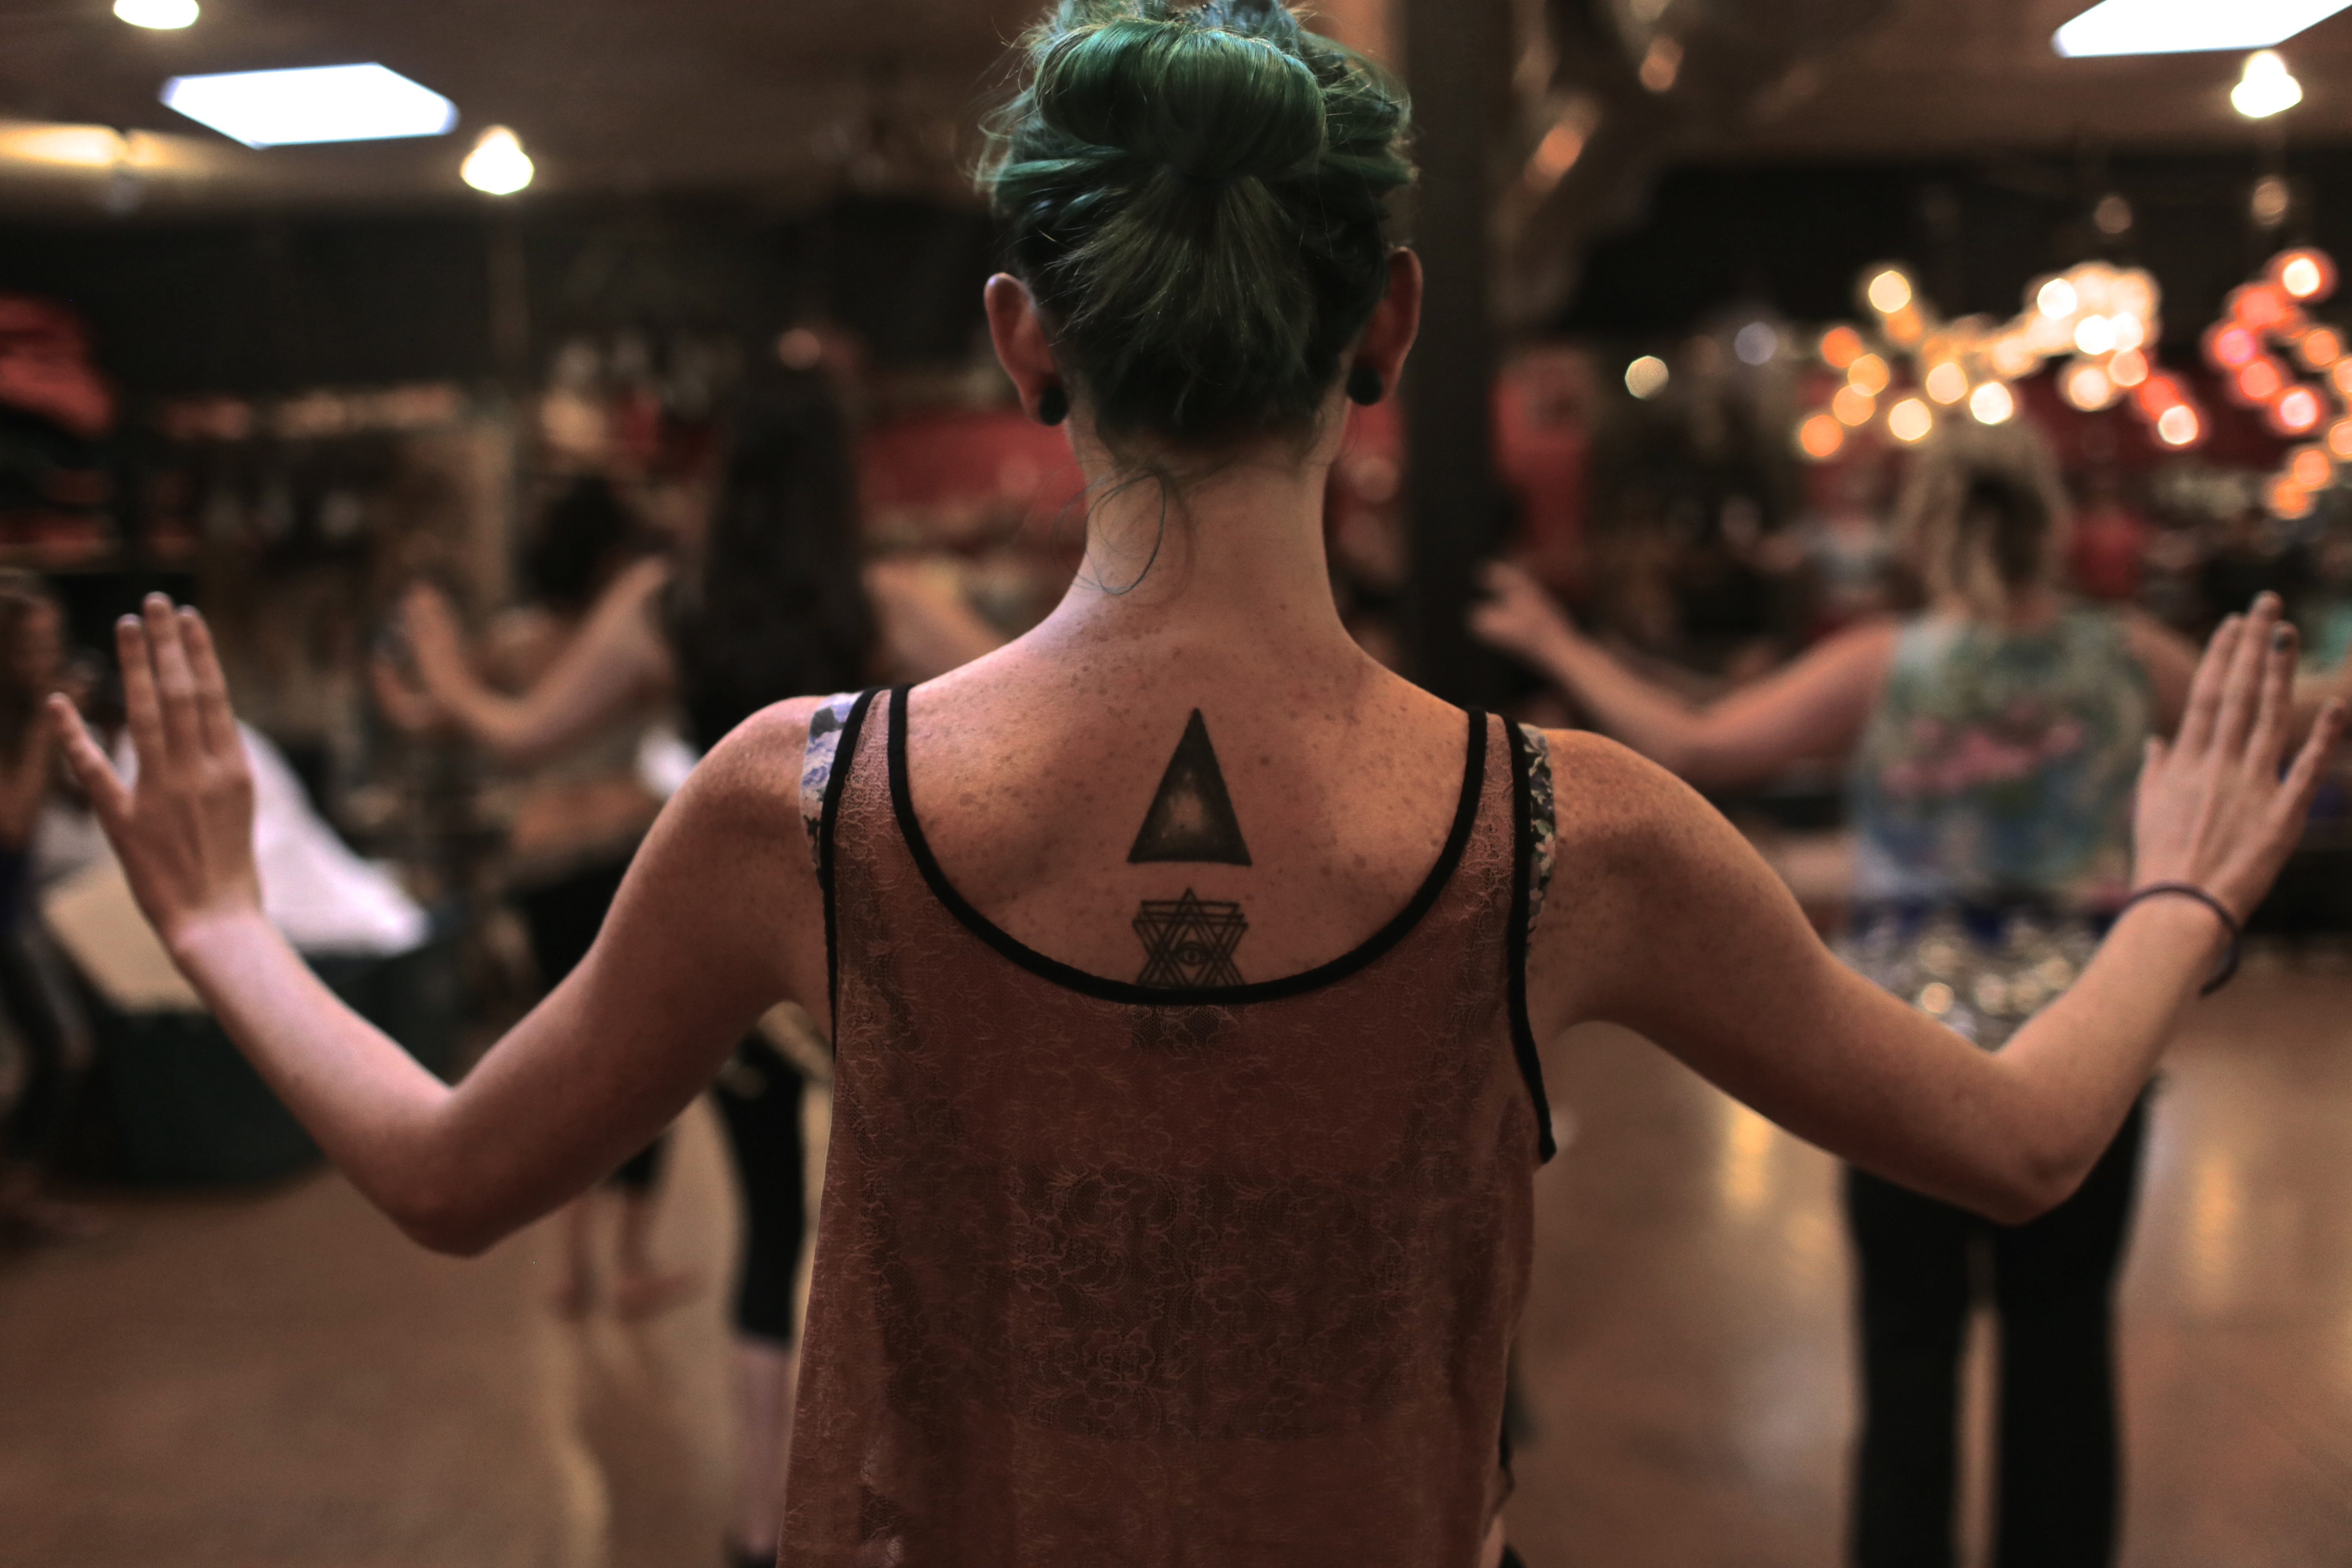 """Zein Al-Jundi says belly dancing is a woman's dance. """"I'm not saying men can't belly dance or shouldn't. Everybody can do whatever they want to do,"""" she says. """"But if the dance genre was specifically designed for a female body than it's really for women."""